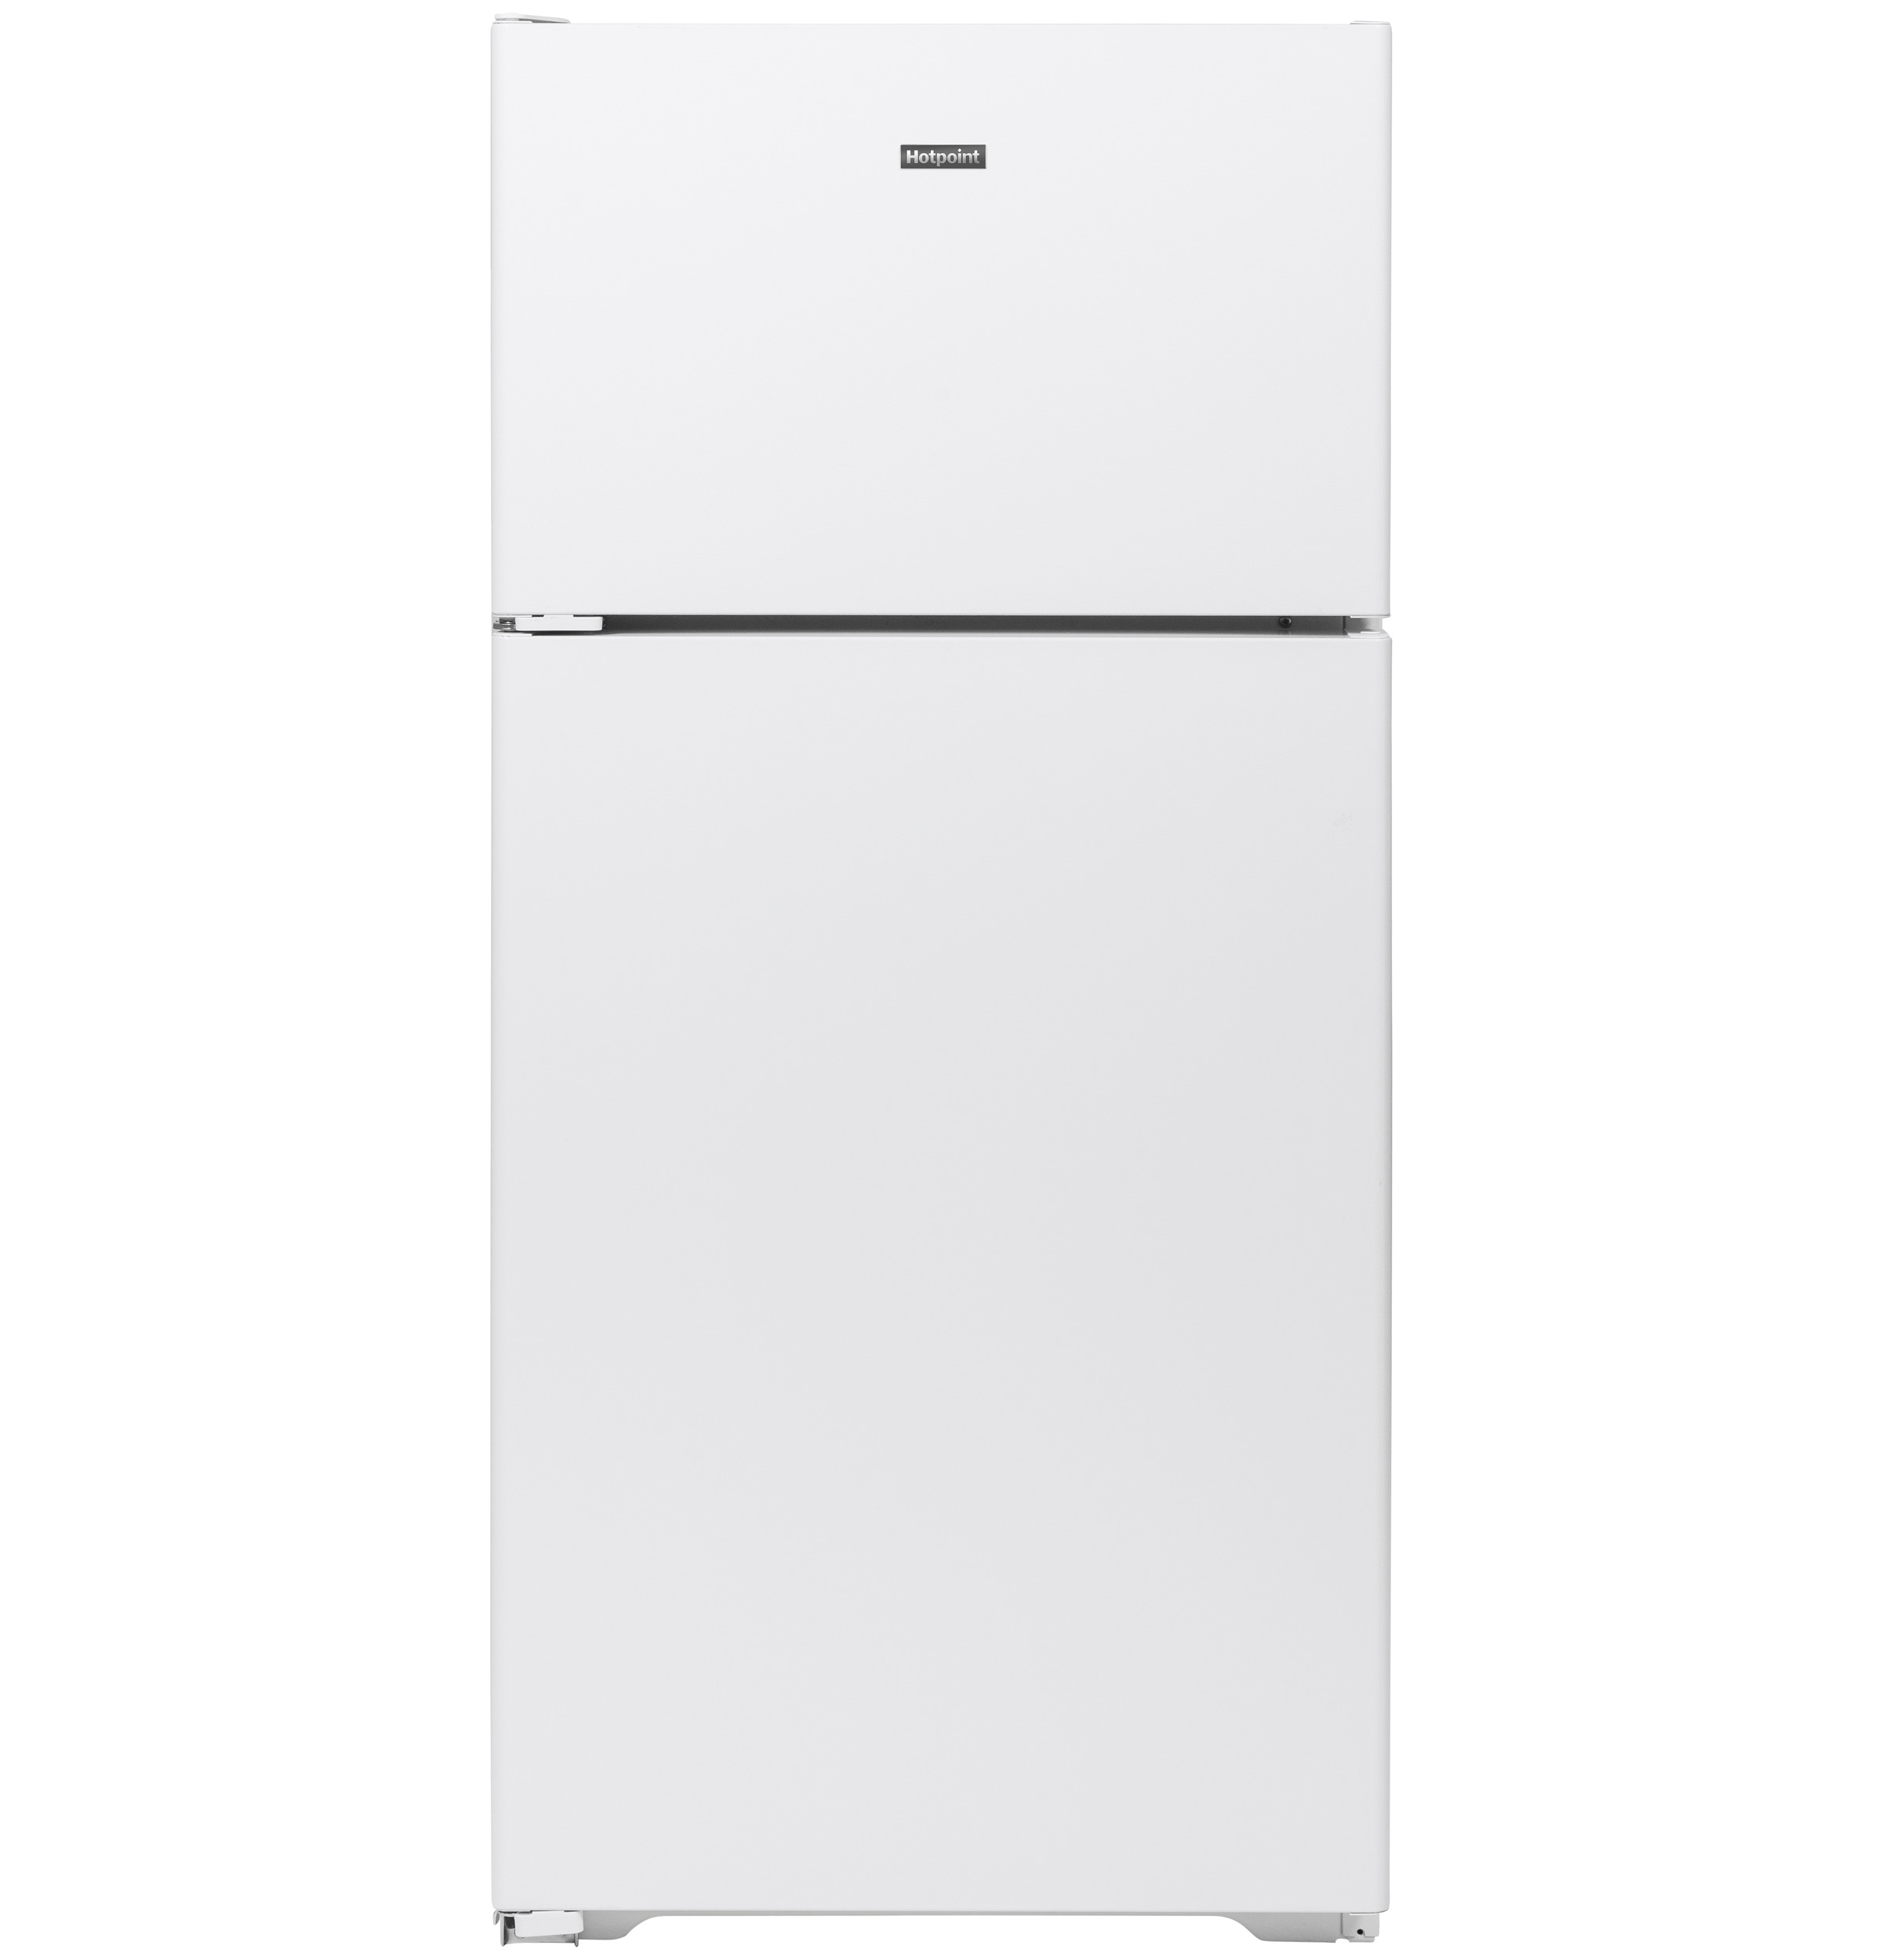 Hotpoint Hotpoint® 15.6 Cu. Ft. Recessed Handle Top-Freezer Refrigerator